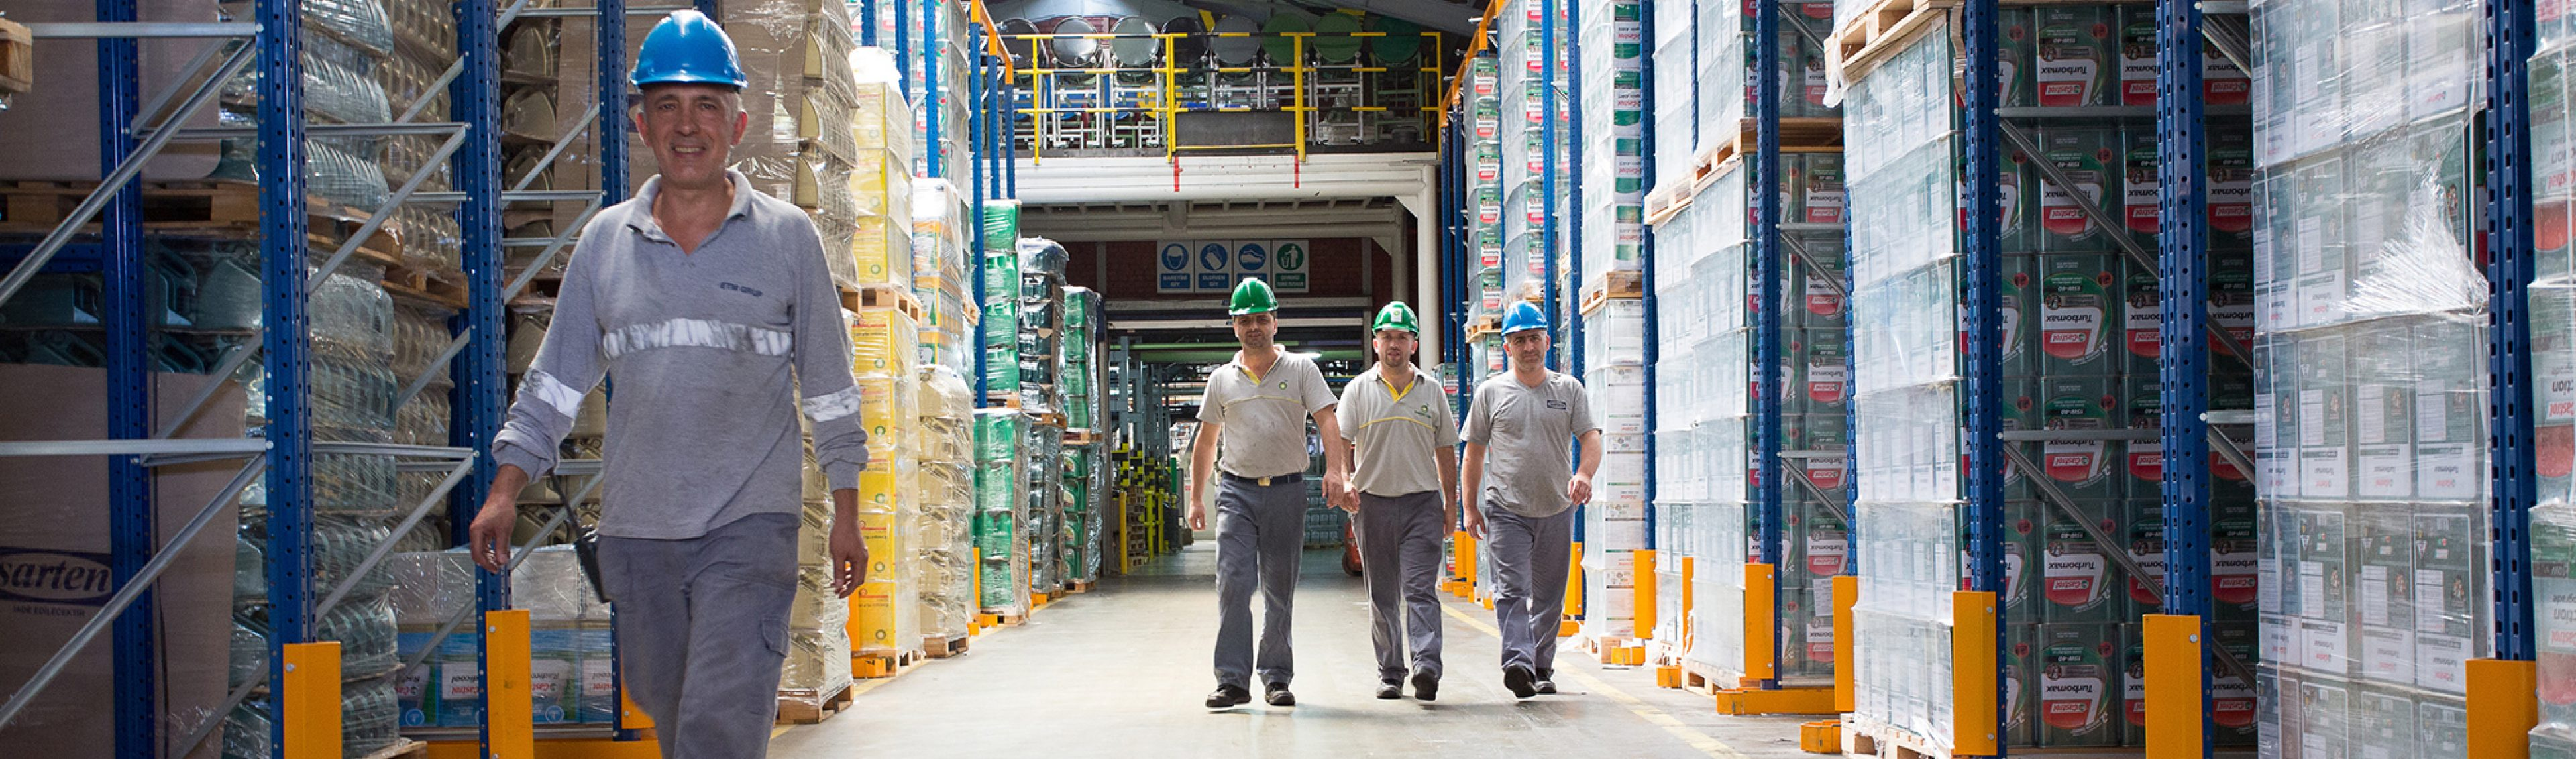 Packaging warehouse workers